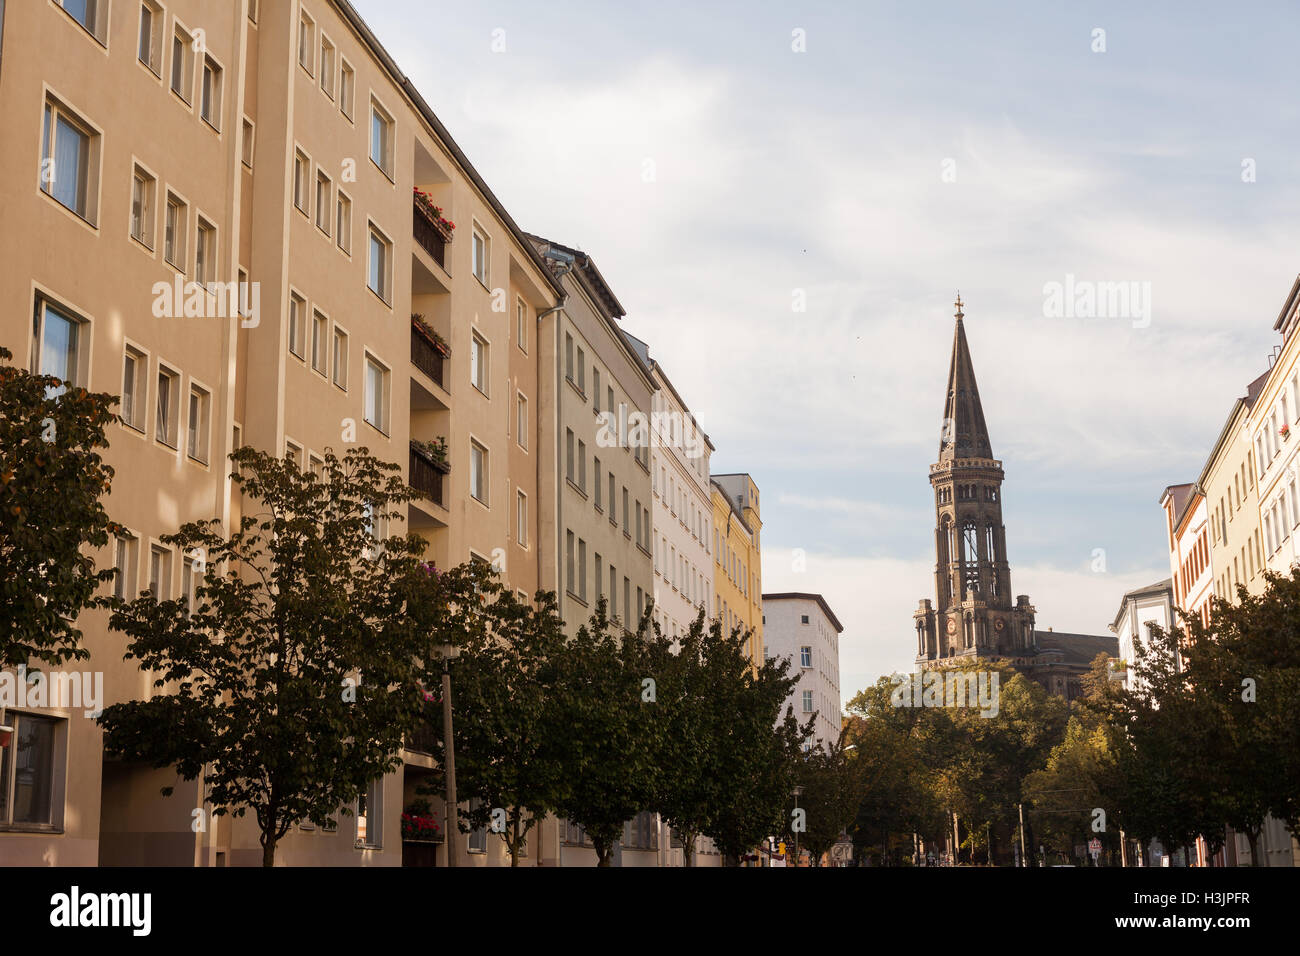 Apartments and the Zionskirche in the afternoon near Kastanienallee, Prenzlauer Berg, Berlin Stock Photo